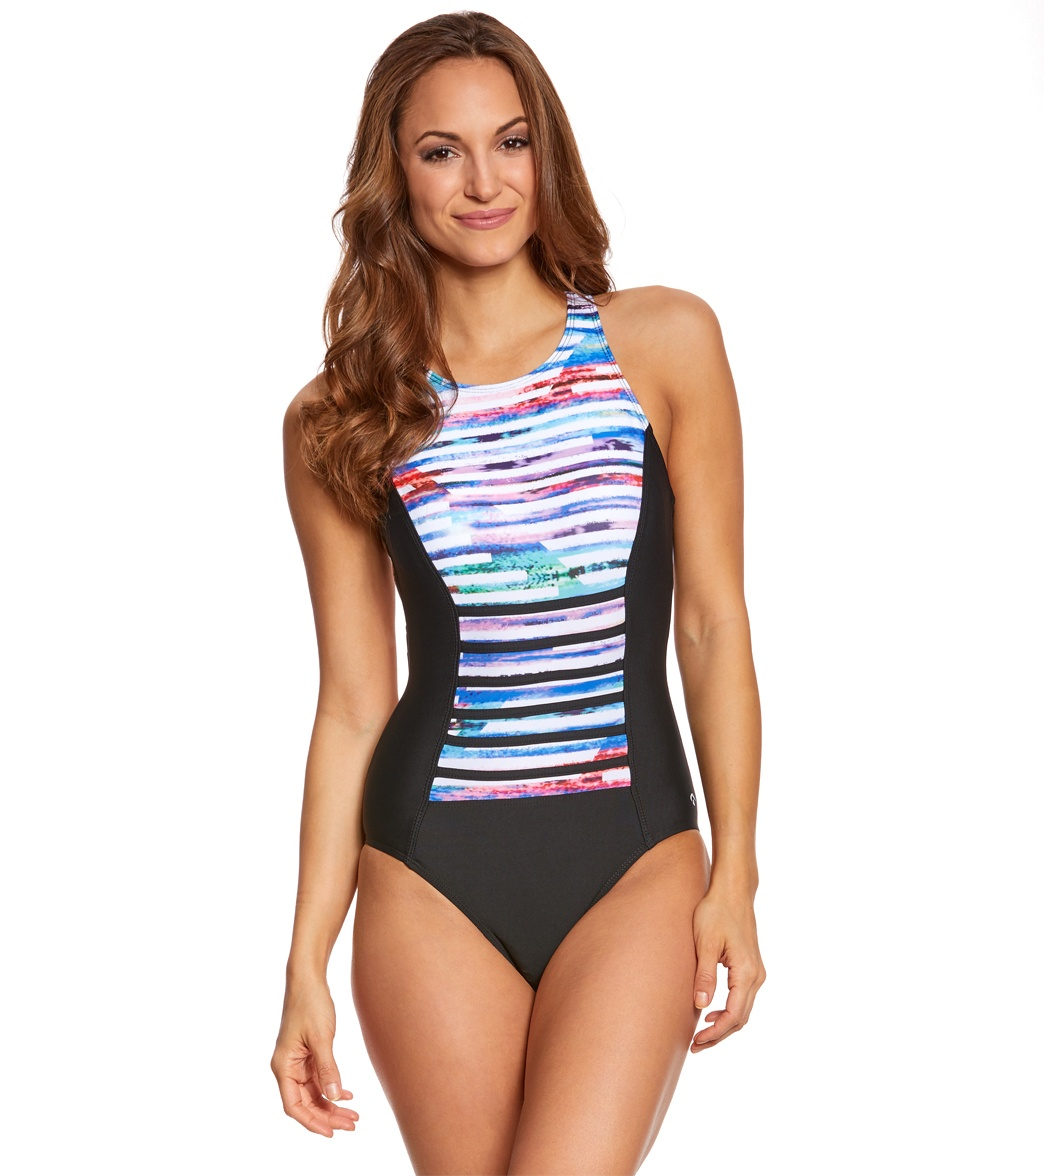 af7f8a9acec Next Women's Perfect Alignment Rejuvinate One Piece Swimsuit